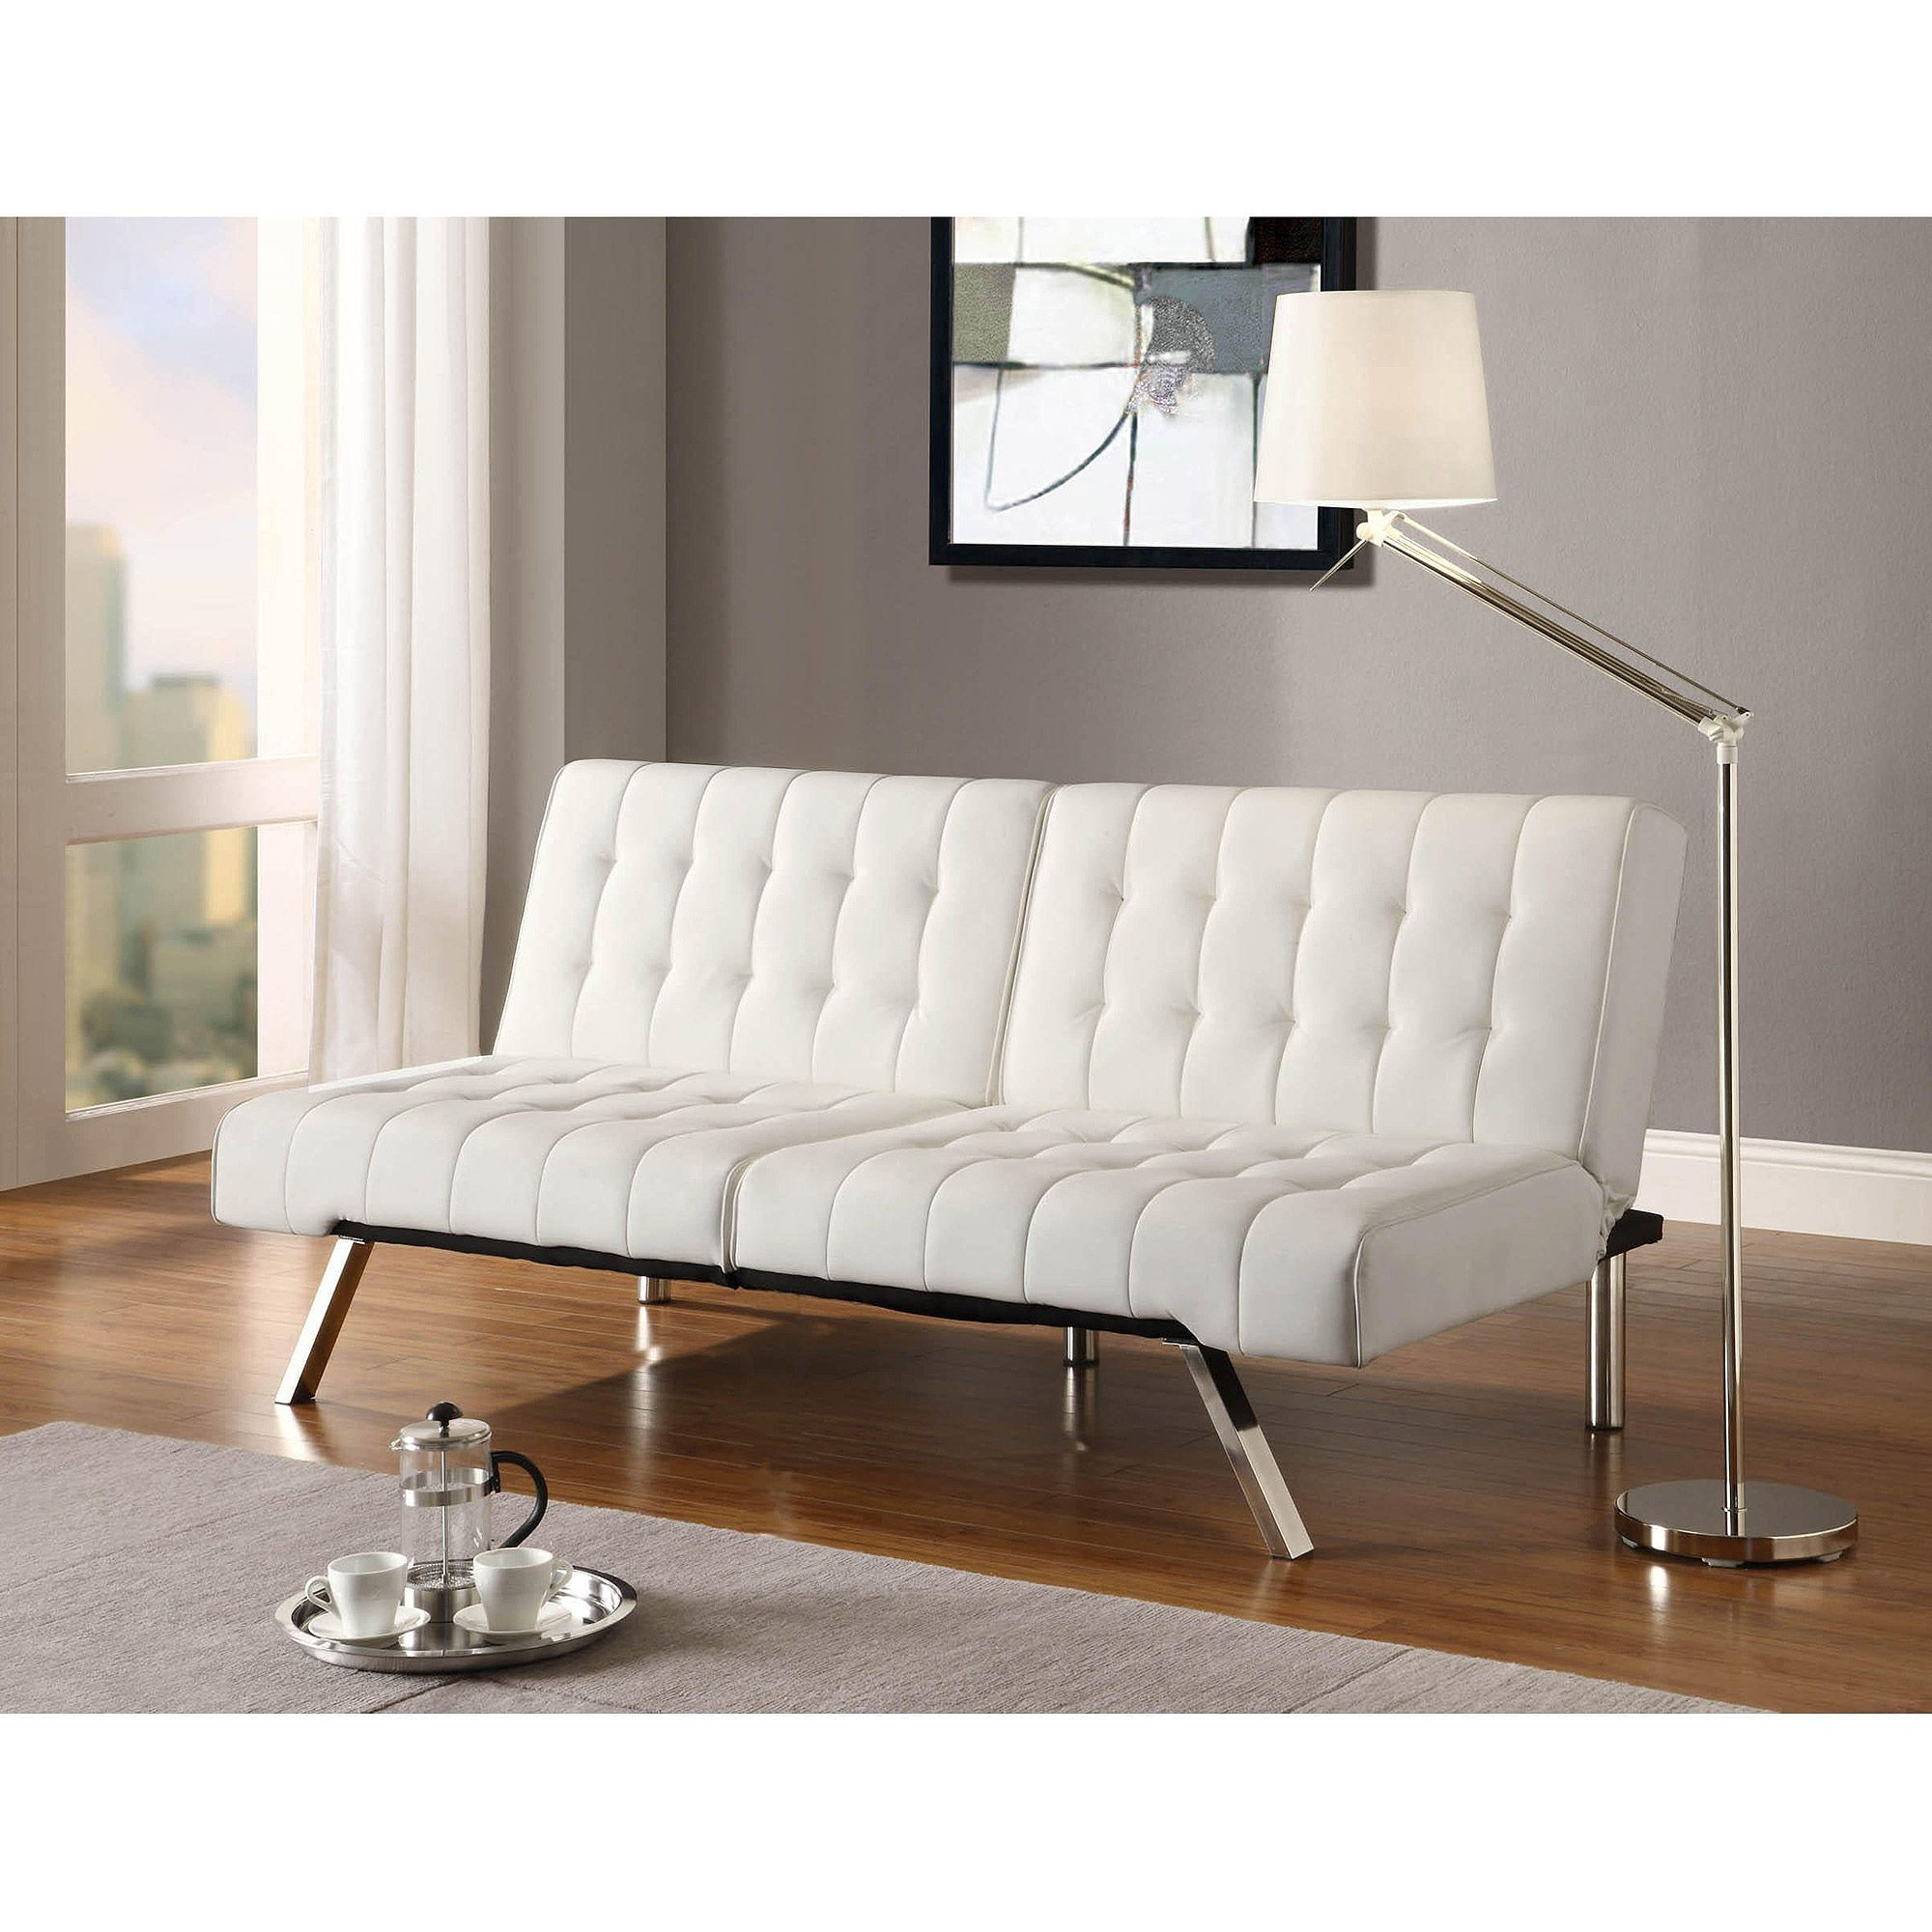 White Futon Couch Decorated With Light Pink Futon Living Room Leather Futon Futon Sofa